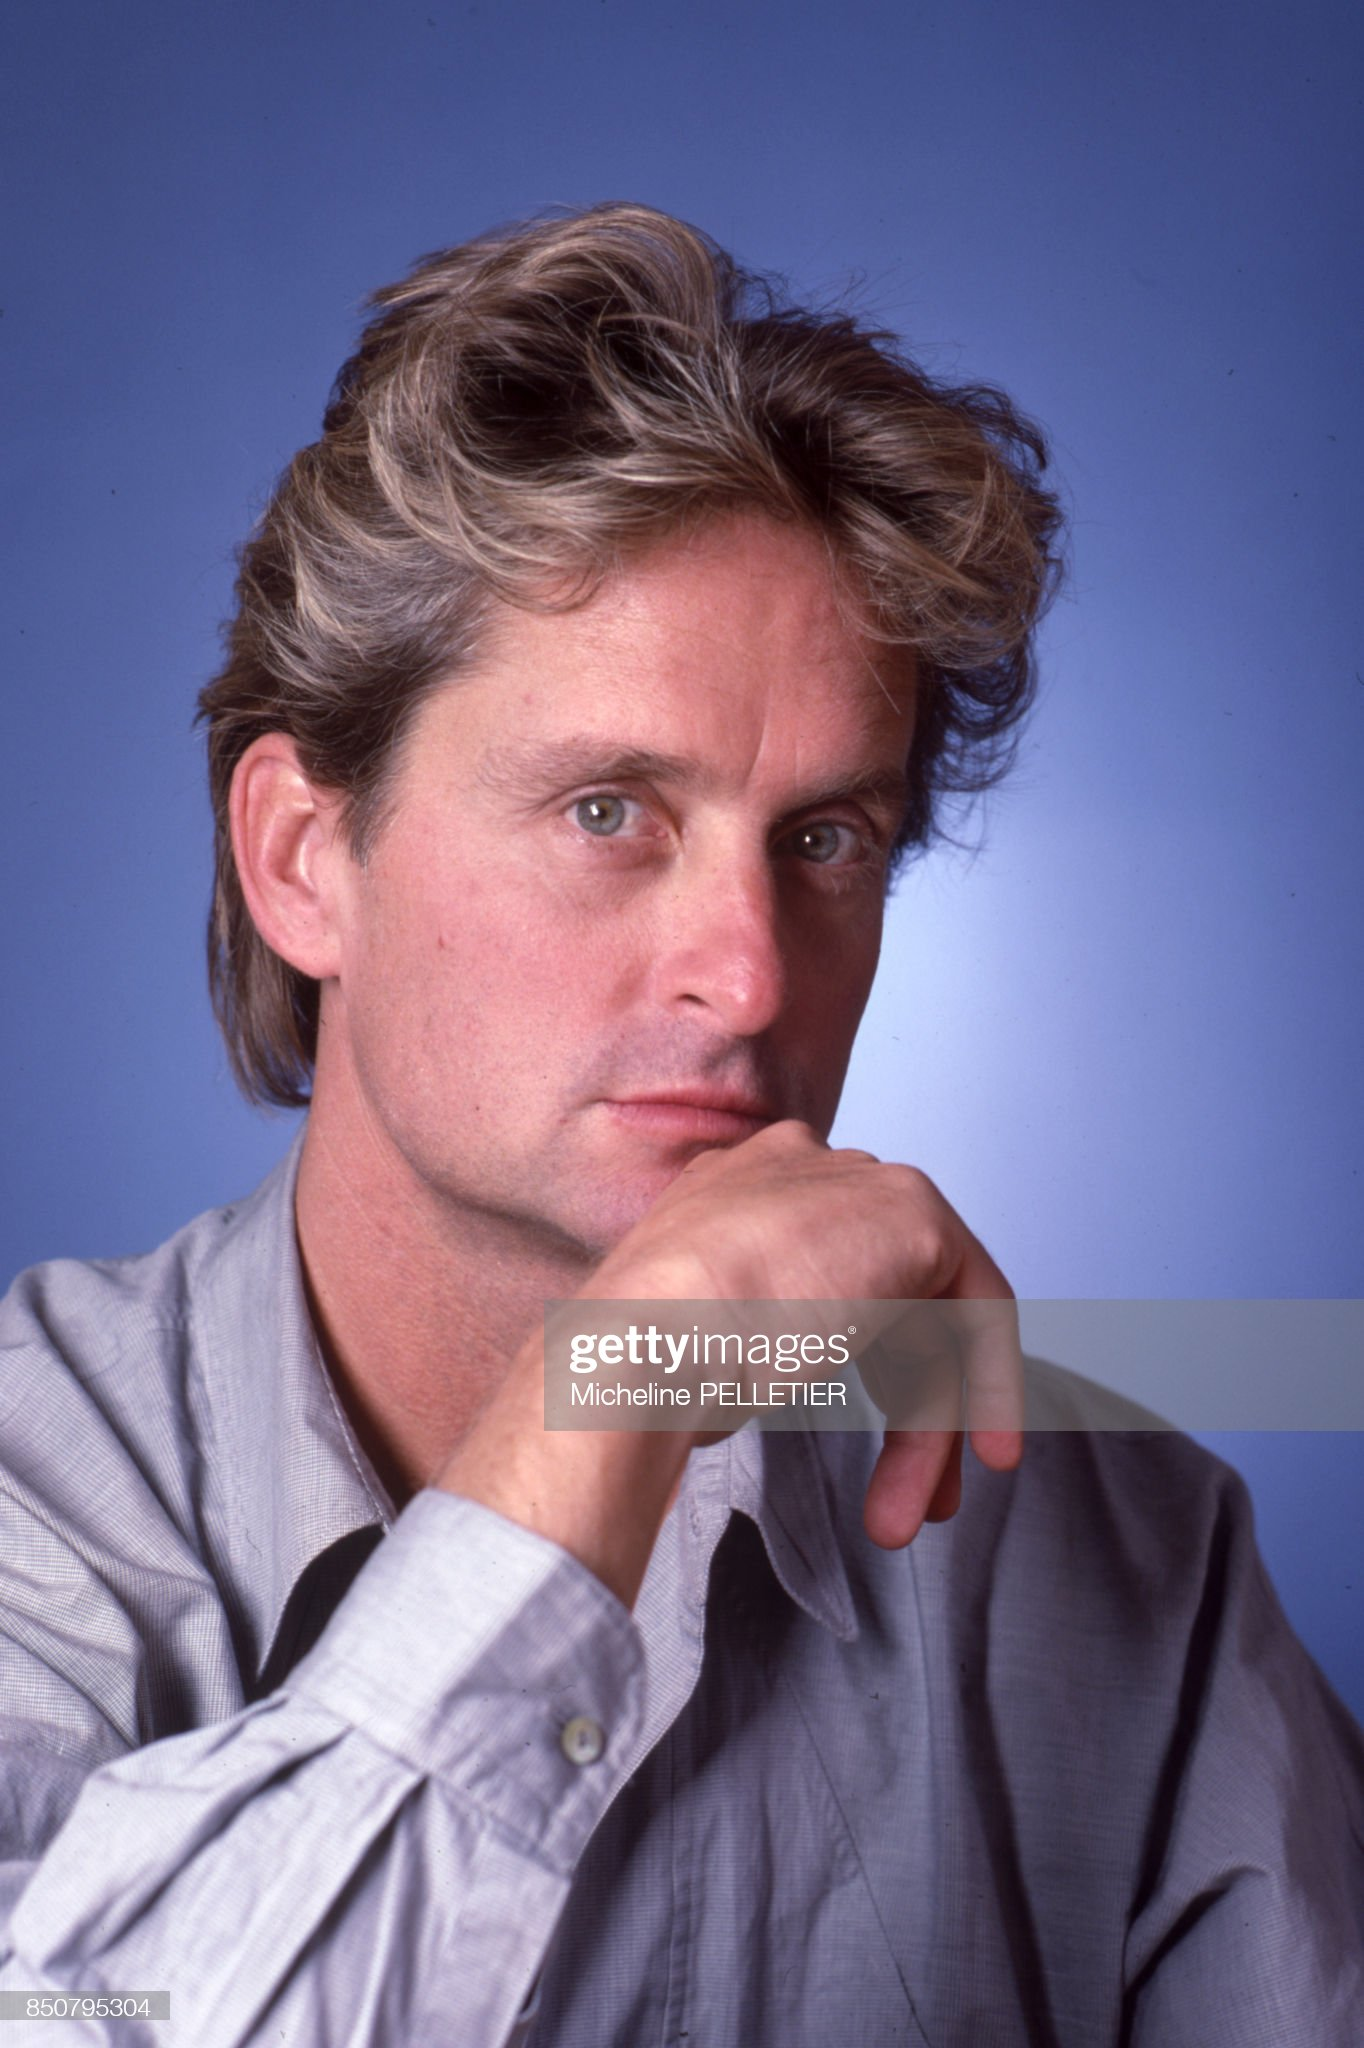 ¿Cuánto mide Michael Douglas? - Altura - Real height Acteur-amricain-michael-douglas-paris-en-septembre-1985-france-picture-id850795304?s=2048x2048